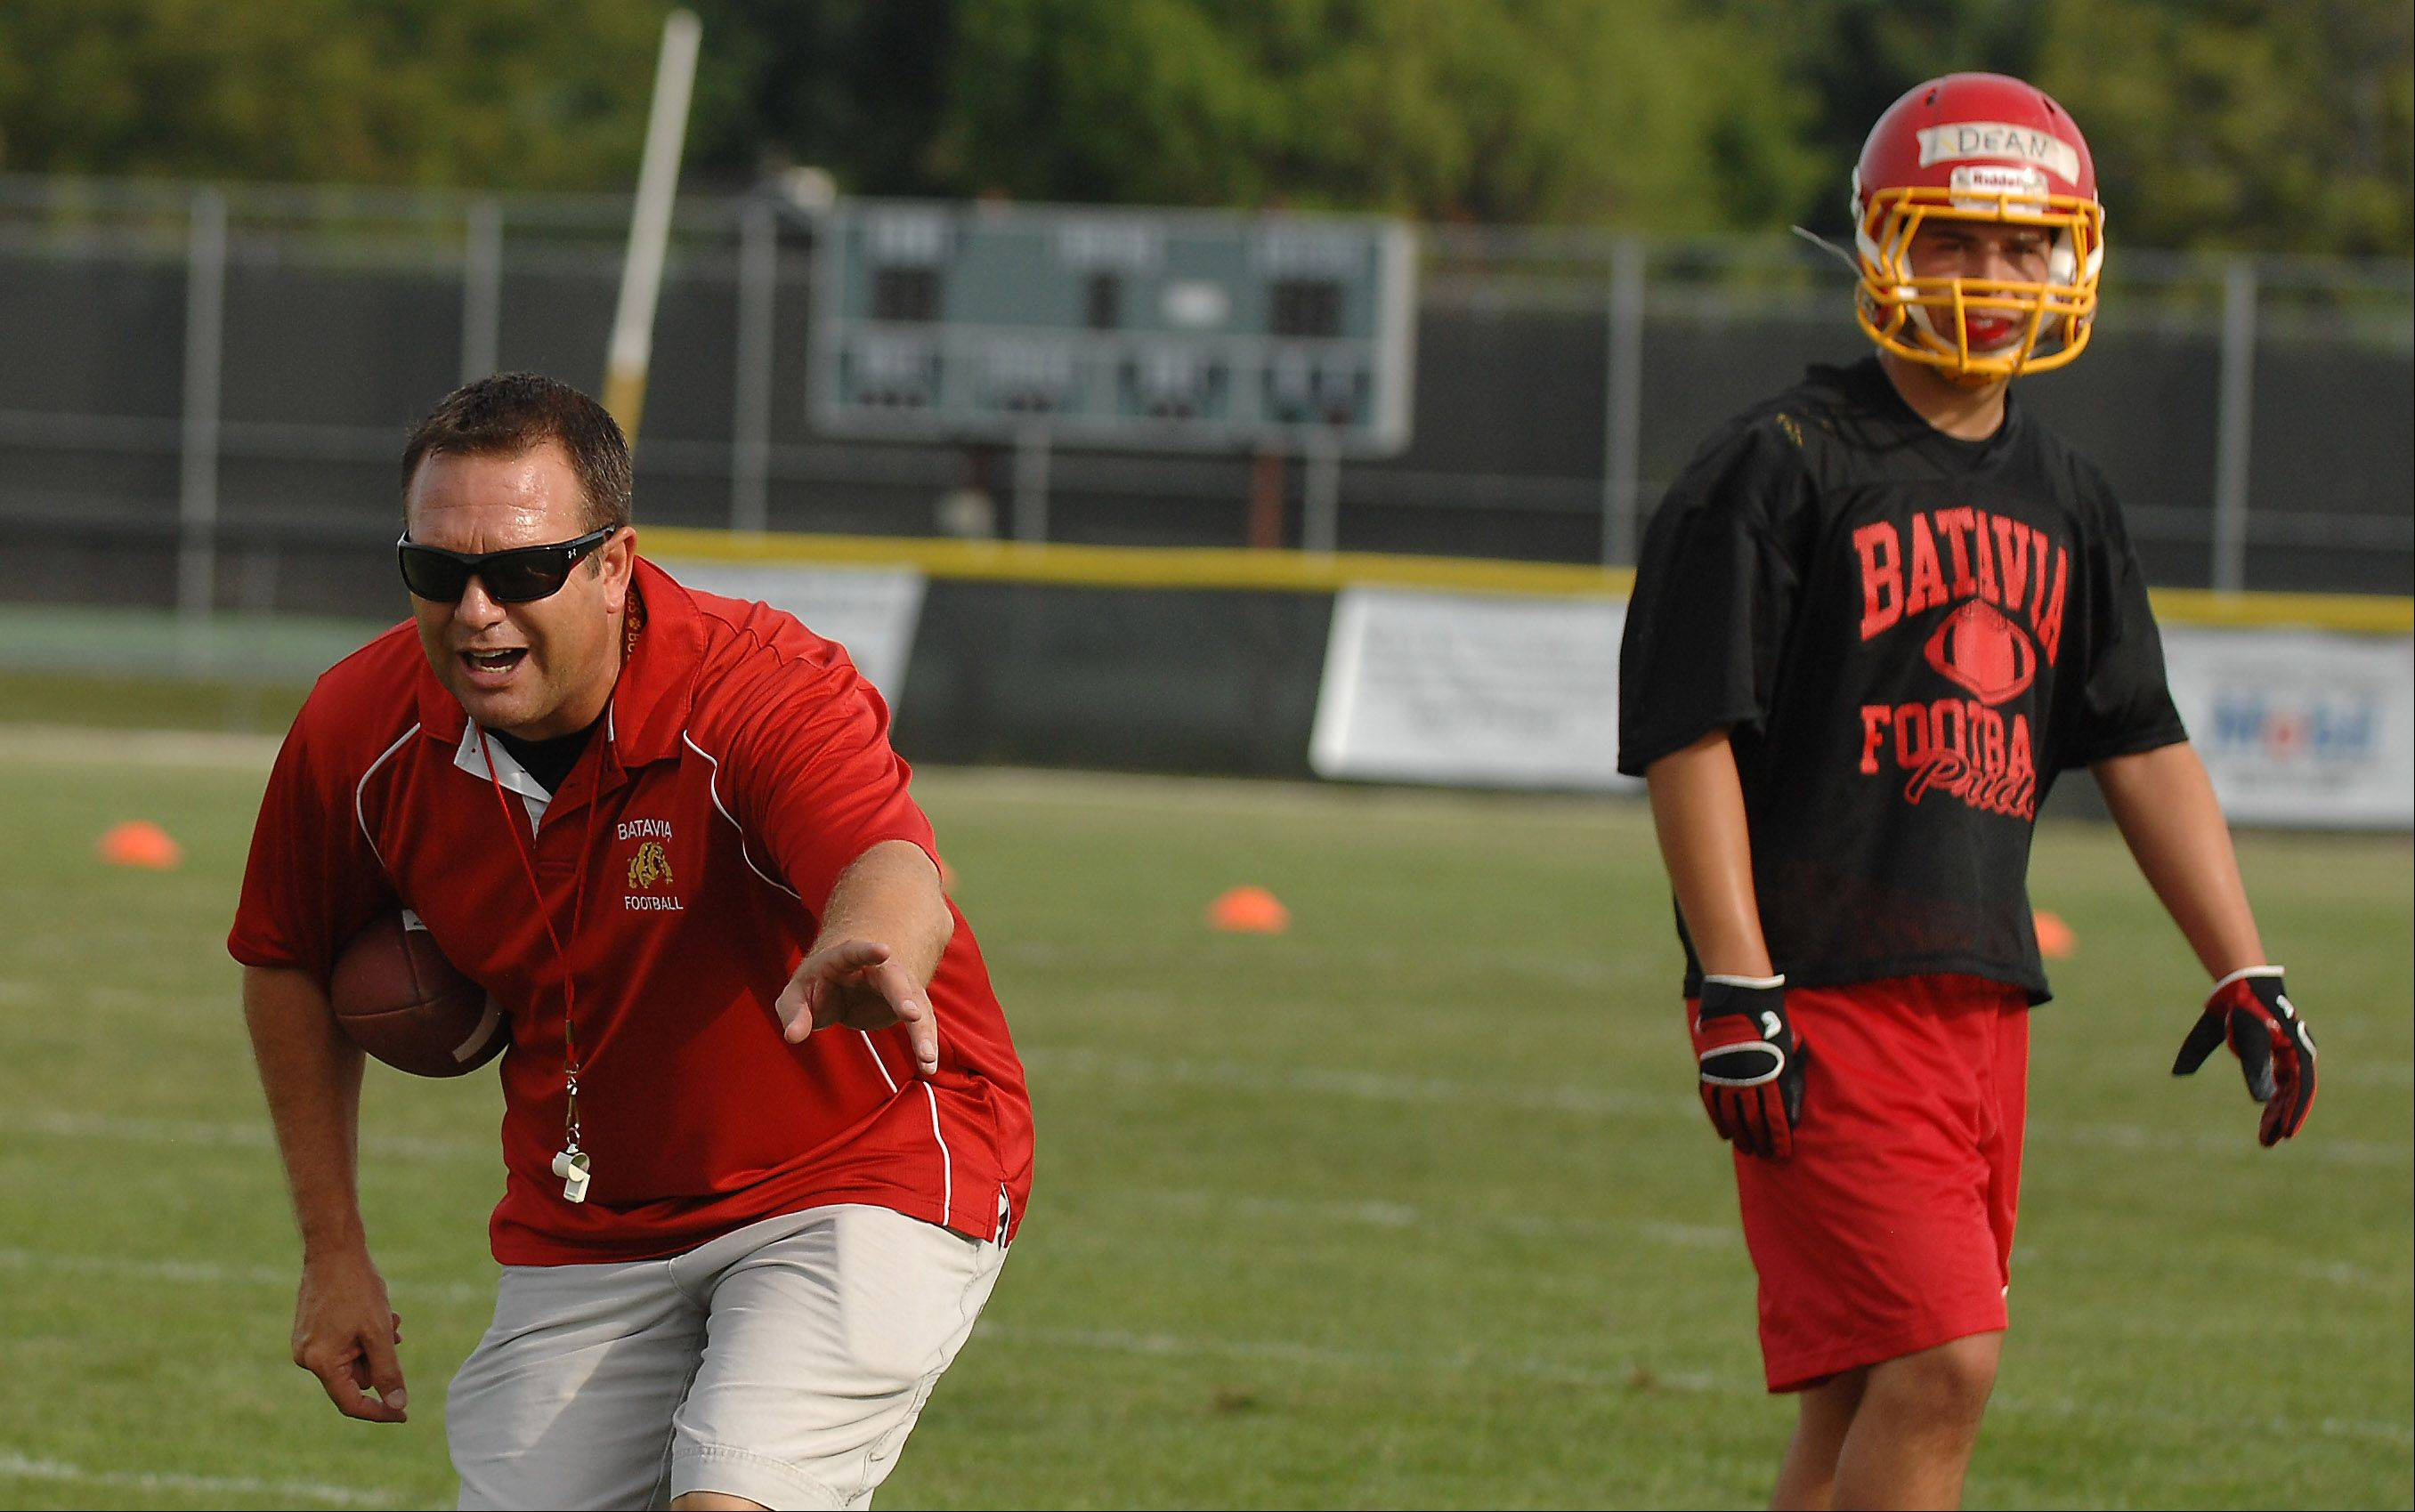 Head coach Dennis Piron directs his team during Batavia's first day of football practice Wednesday.